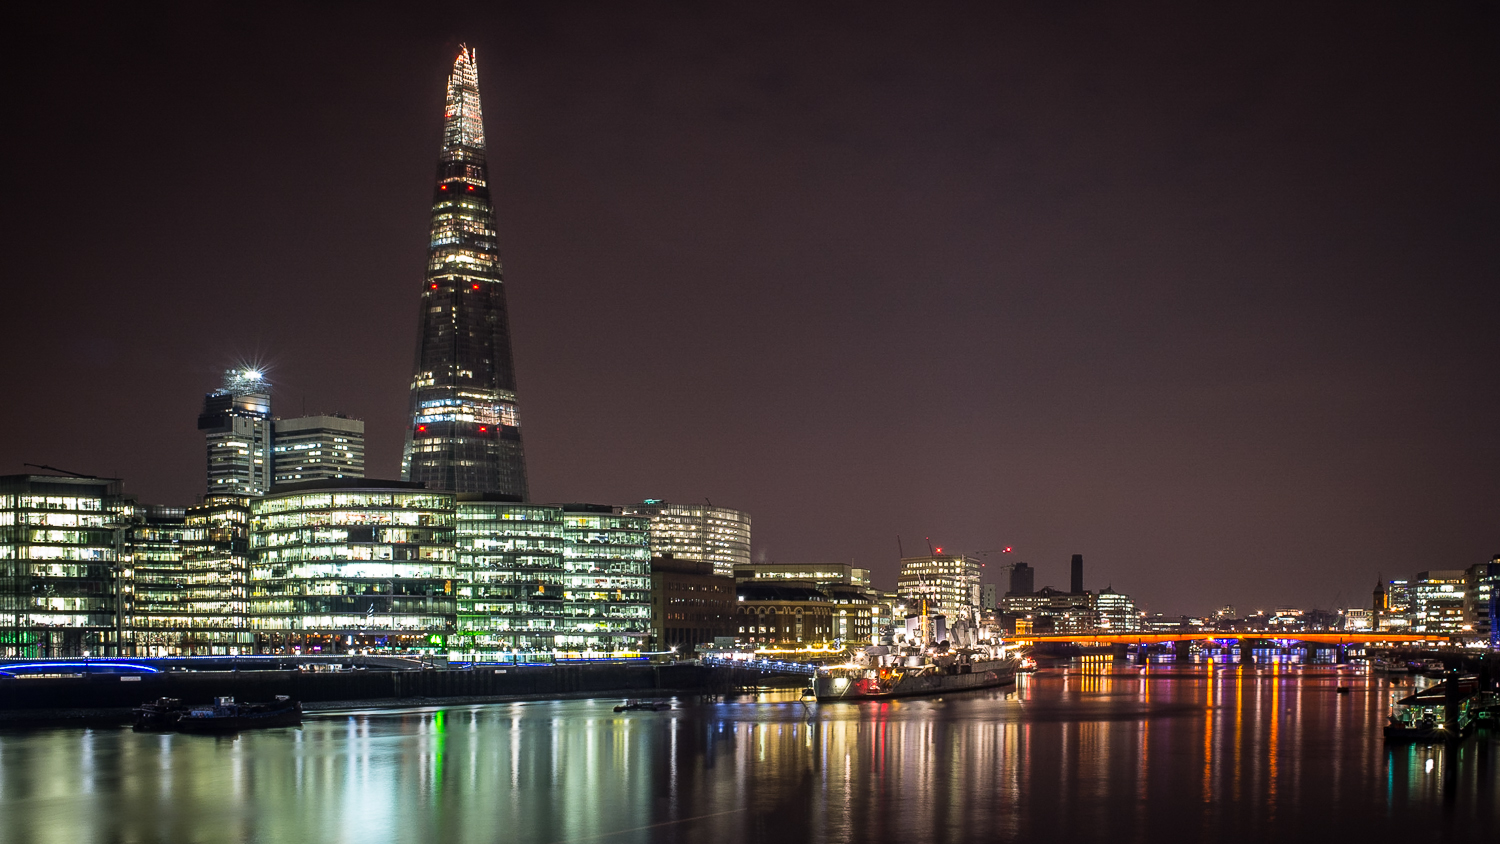 Shard at Night.jpg